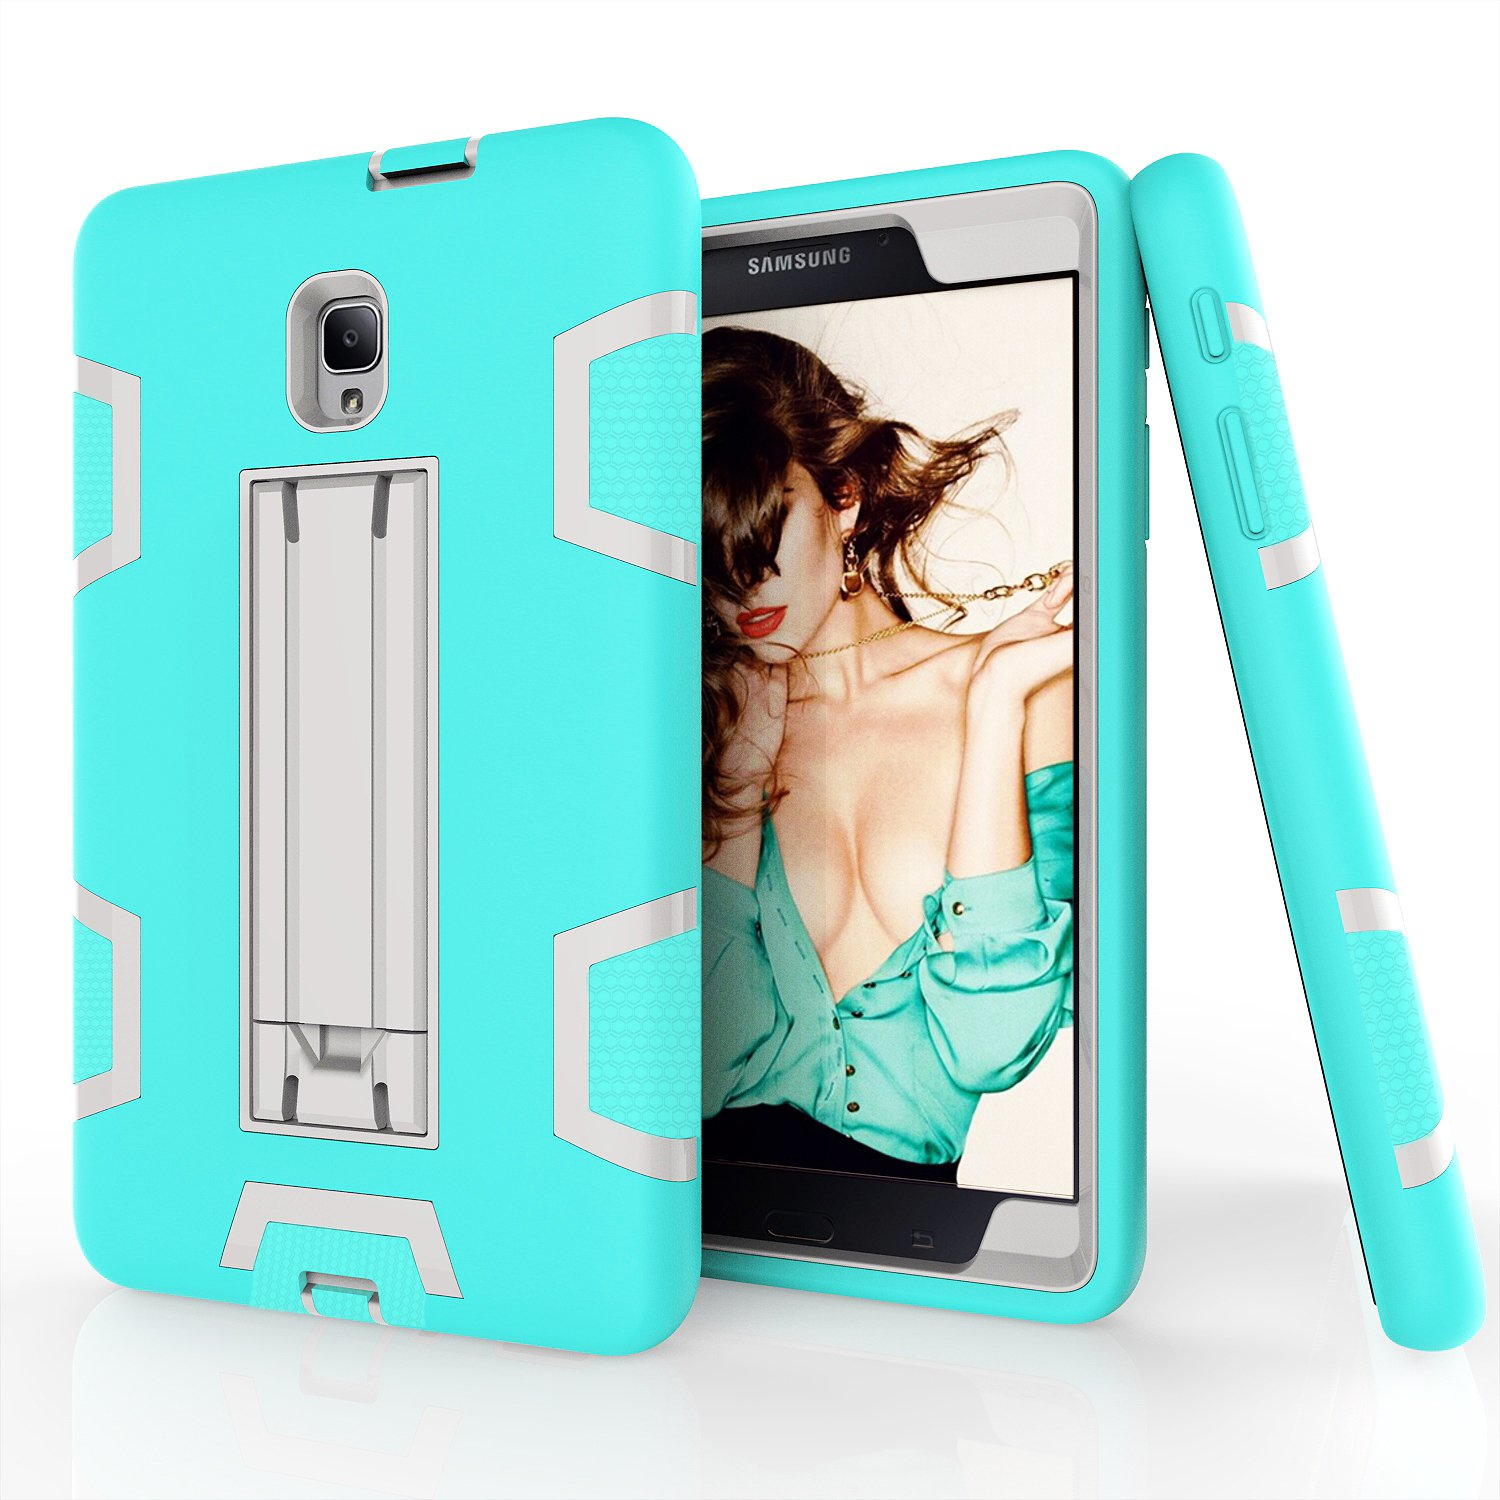 Hansin Samsung Galaxy Tab A 8.0 2017 Case, [Kickstand] Three Layer Hybrid Heavy Duty Full-Body Shockproof Anti-Slip Protective Case for Tab A 8.0 2017(SM-T380/T385) Tablet (Black/Aqua)